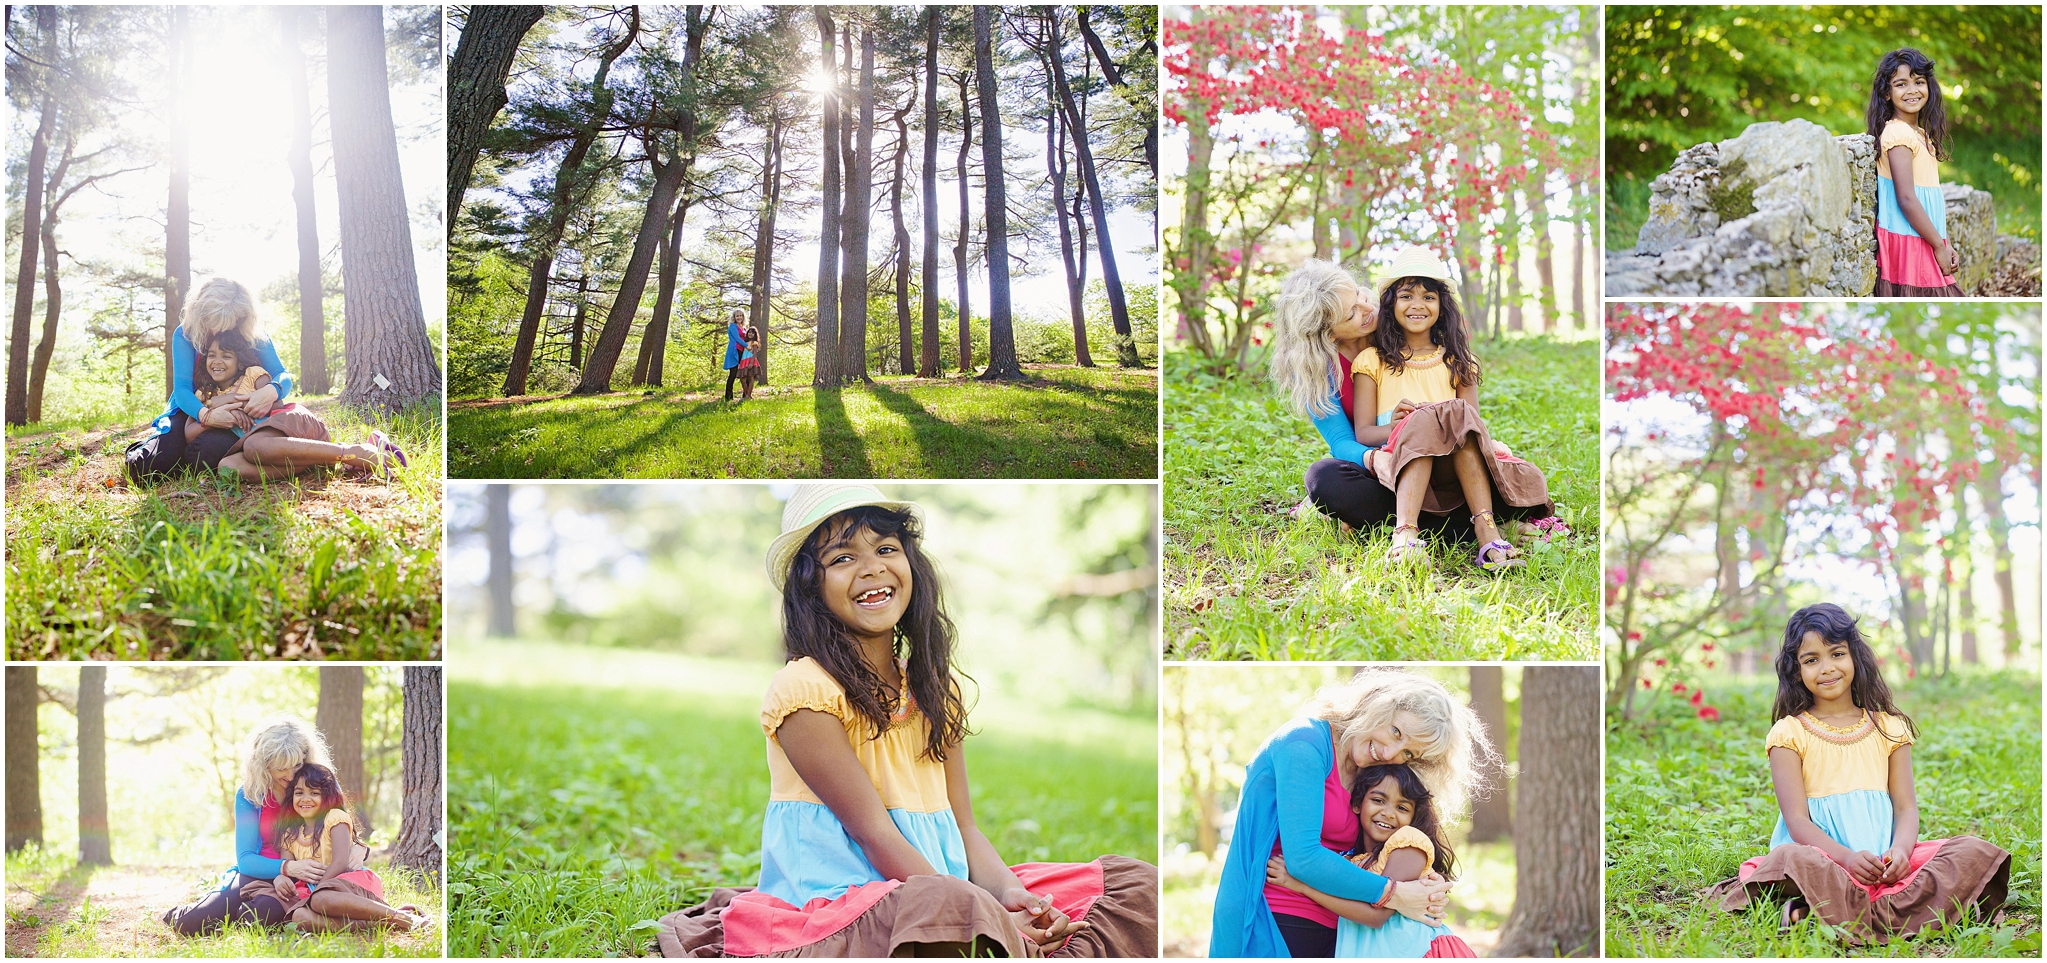 More Magic | Arnold Arboretum Spring Mini Session